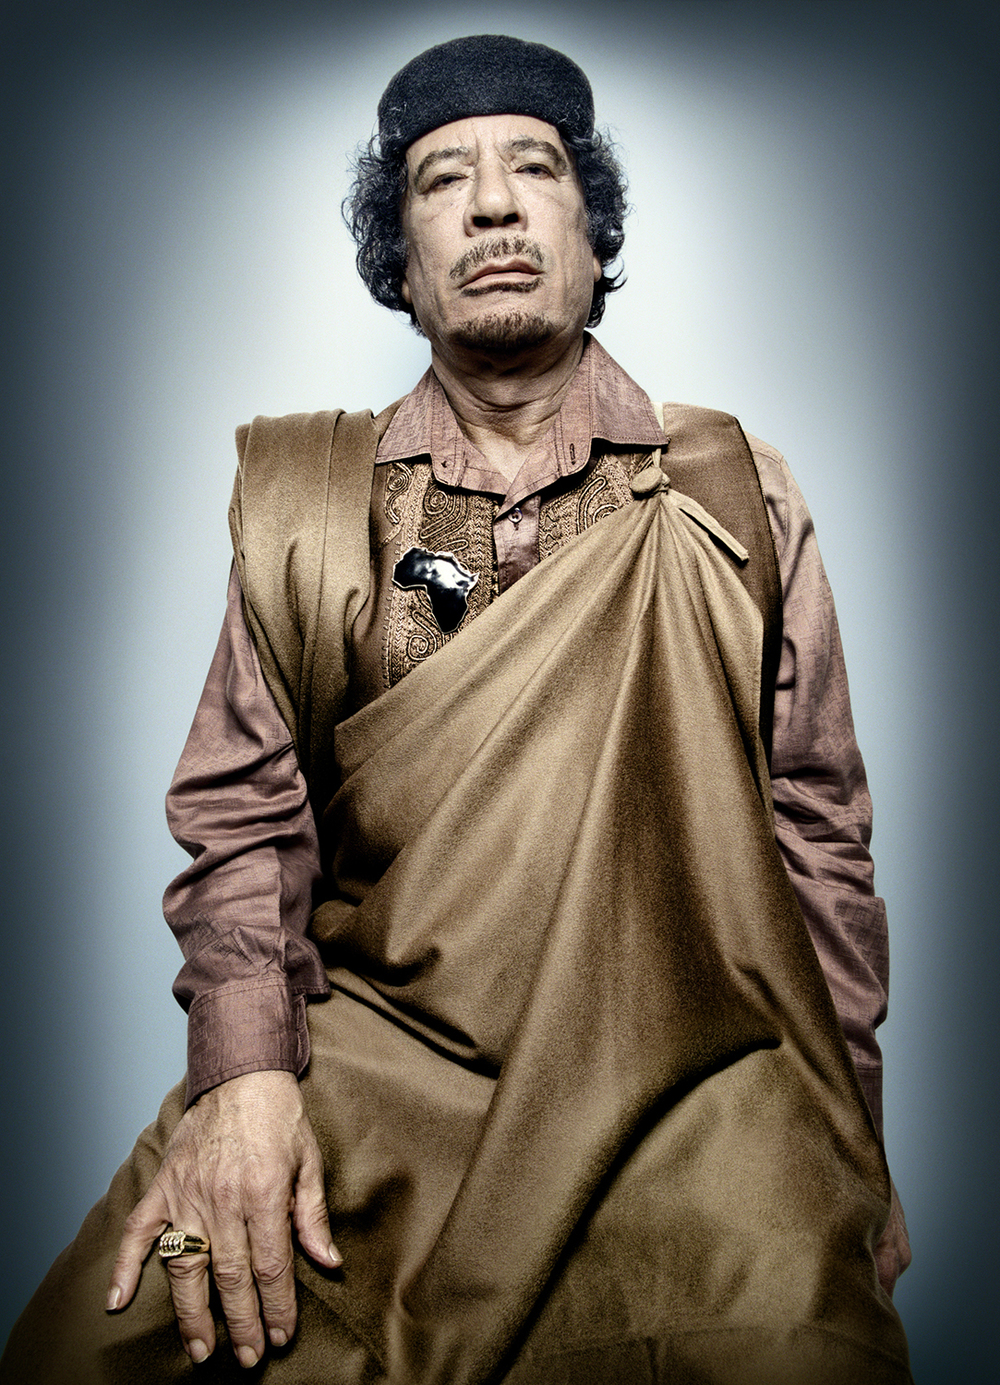 OPTIMIZED_Libya_Mal-Gaddafi.jpg